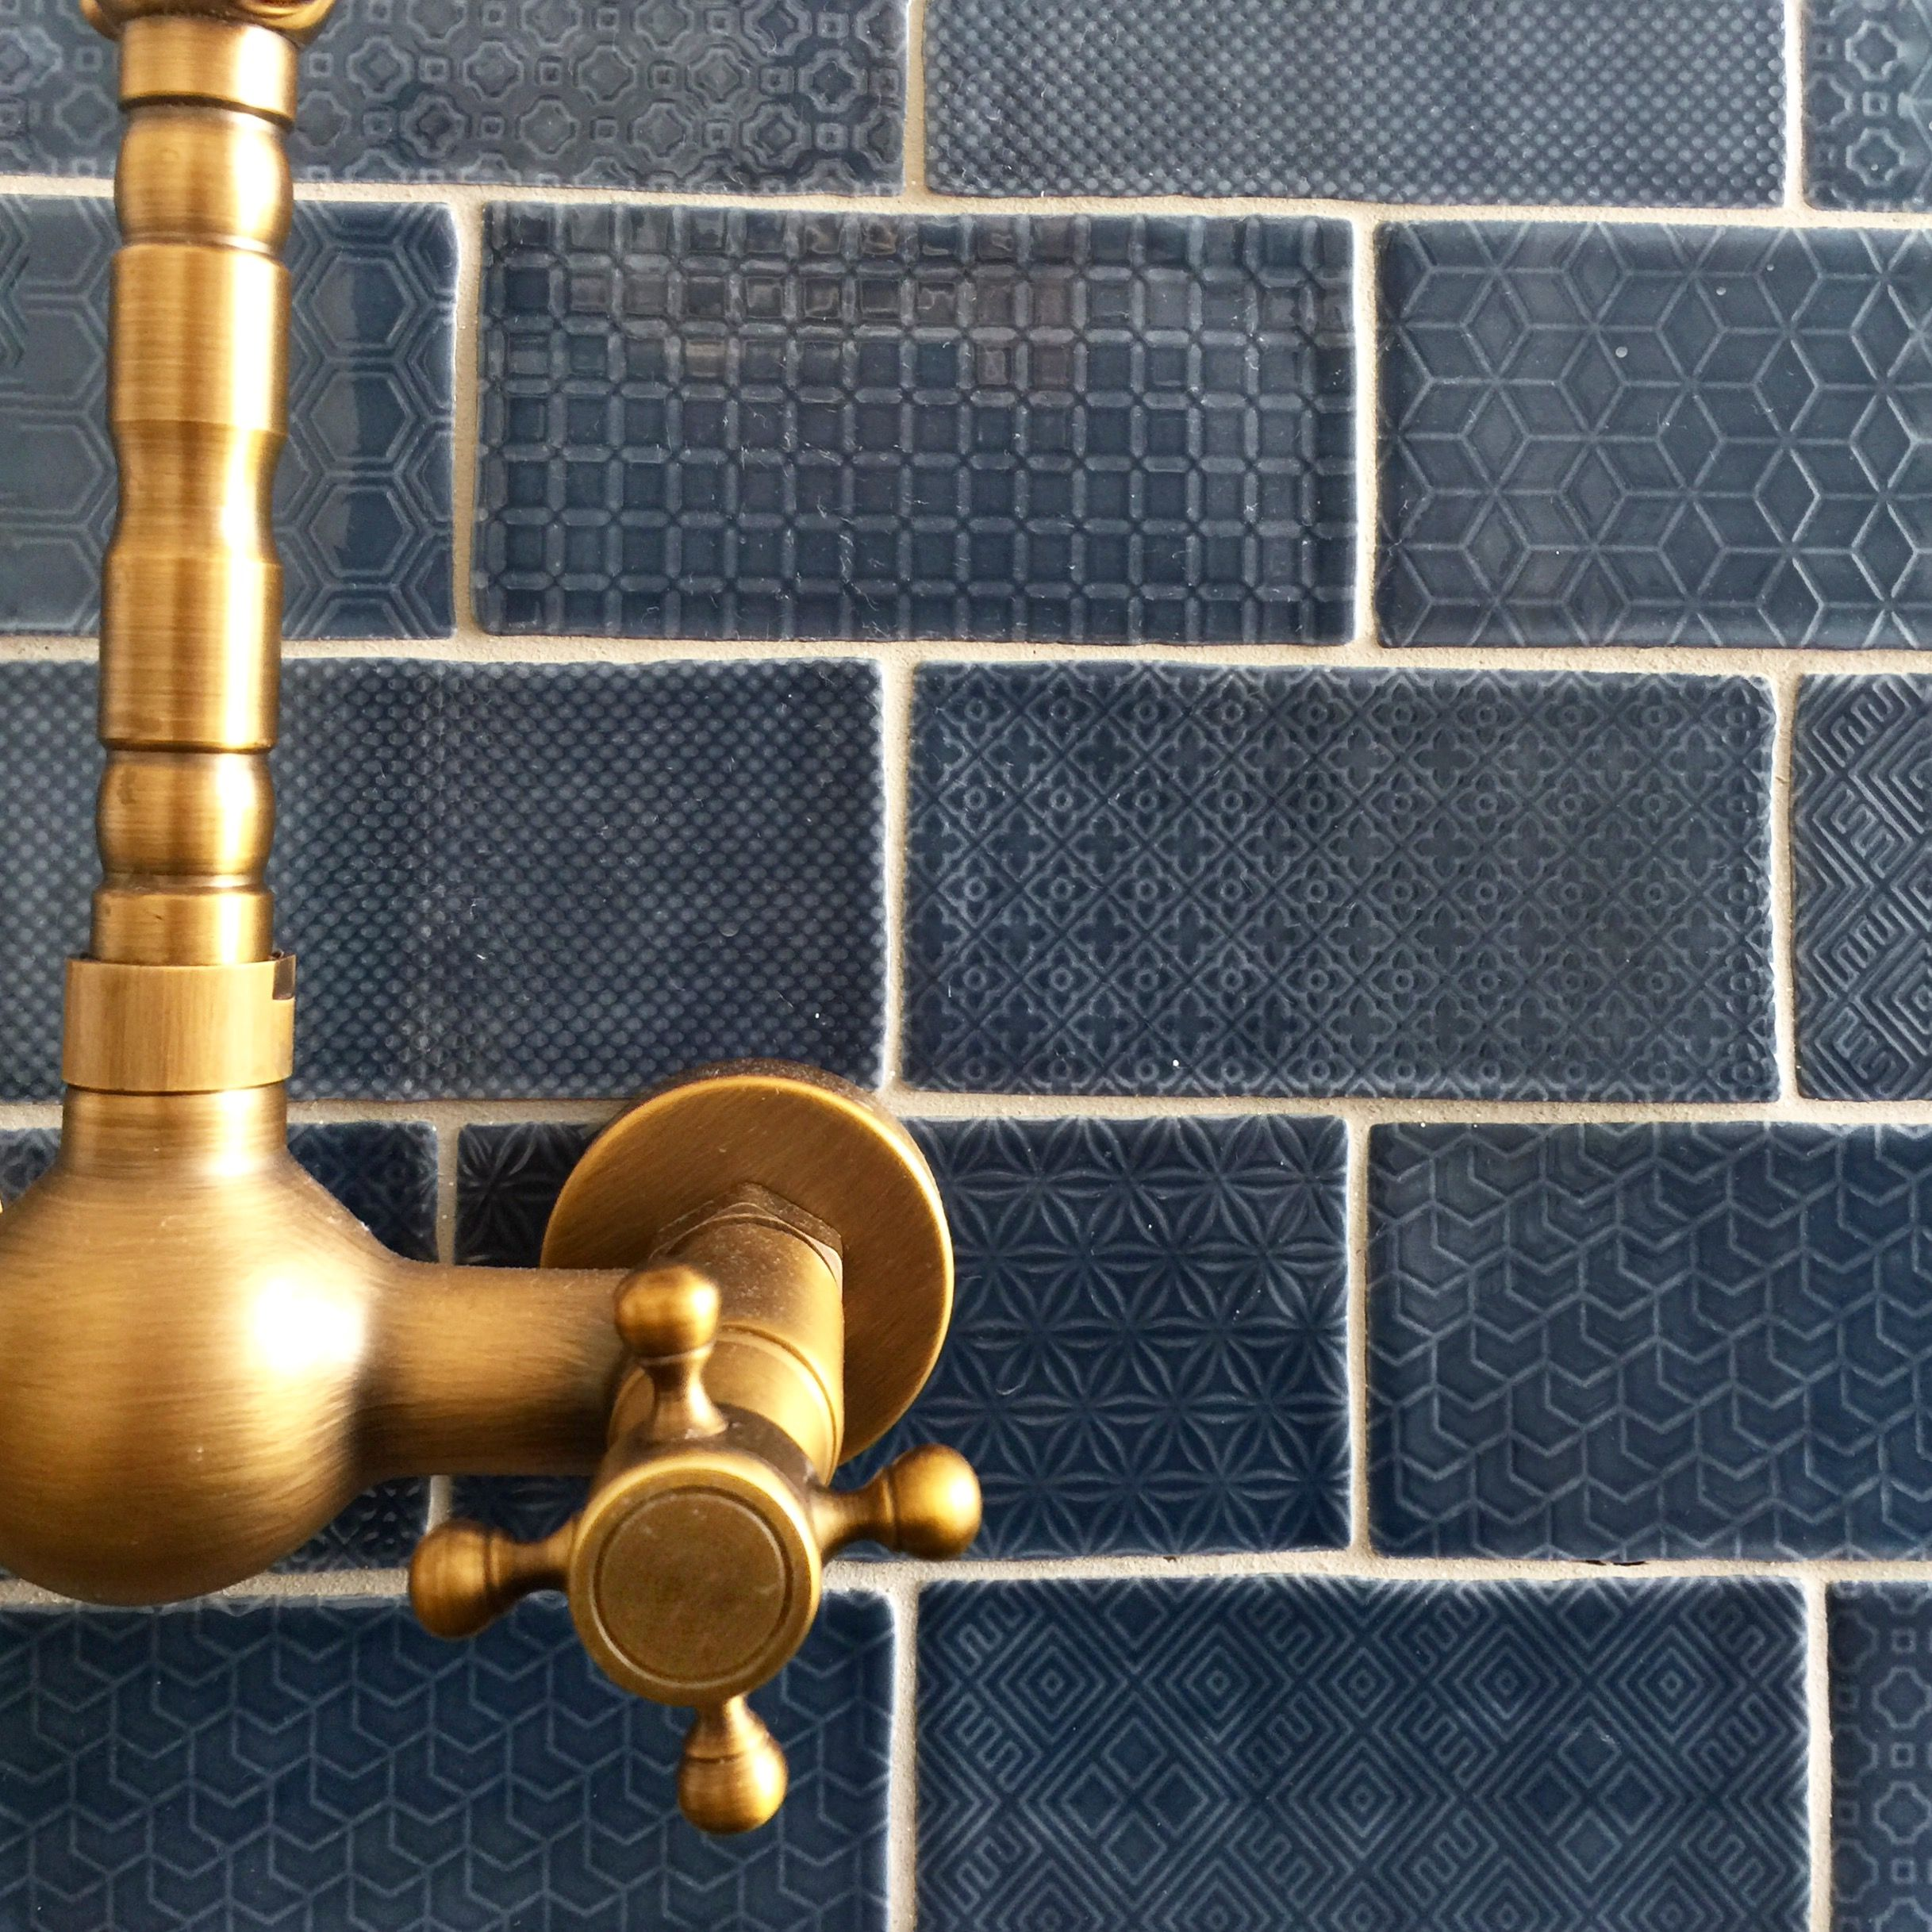 gold tap ware and denim blue subway tiles make up my laundry the_beach_lounge - Subway Tile House Interior